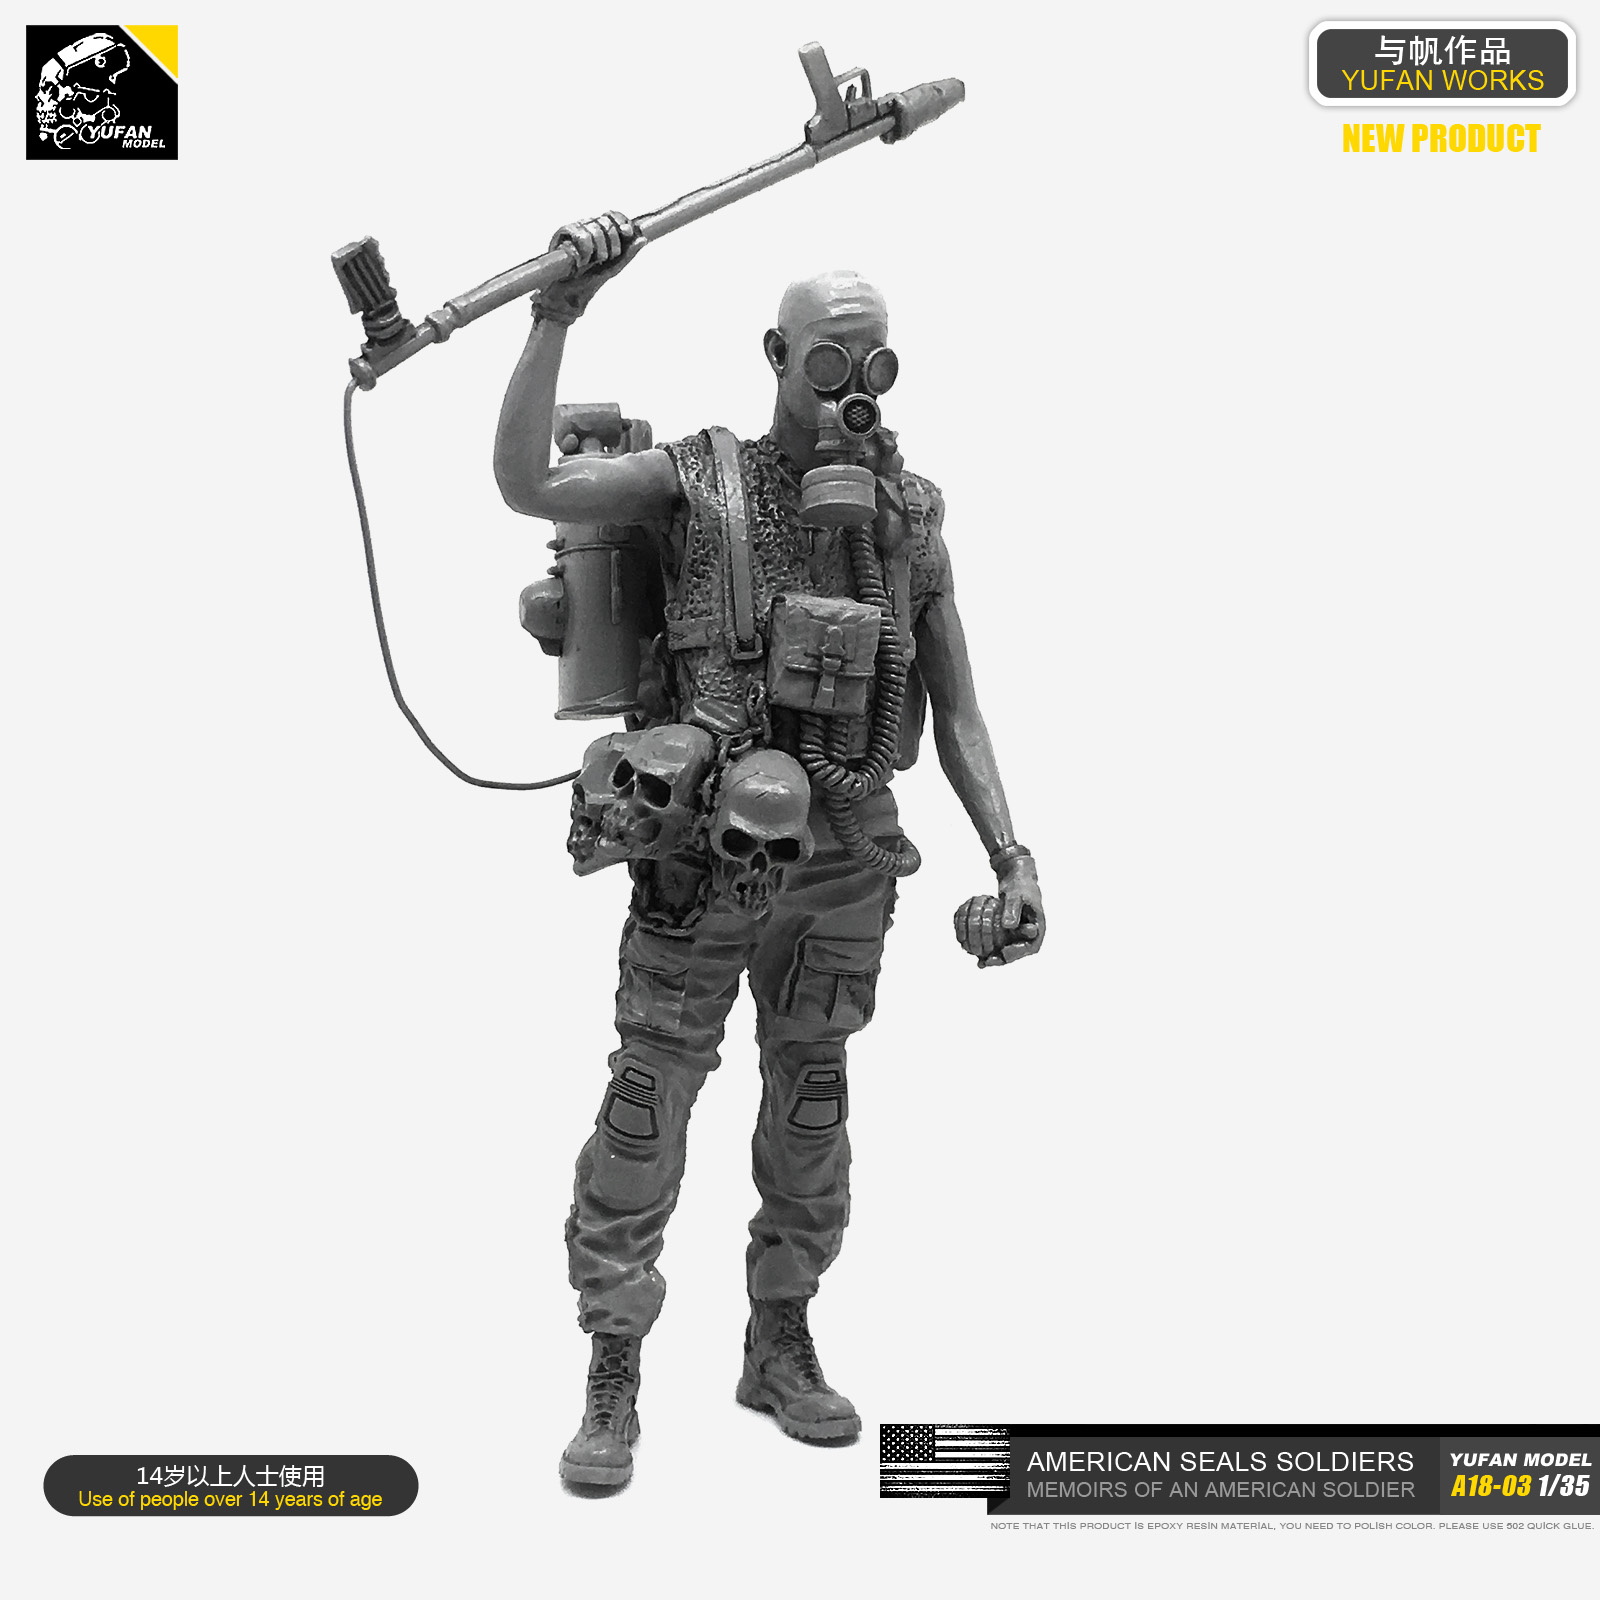 1/35 Resin Kits Soldier Model (Dooms Of The Apocalypse) Self-assembled A18-03